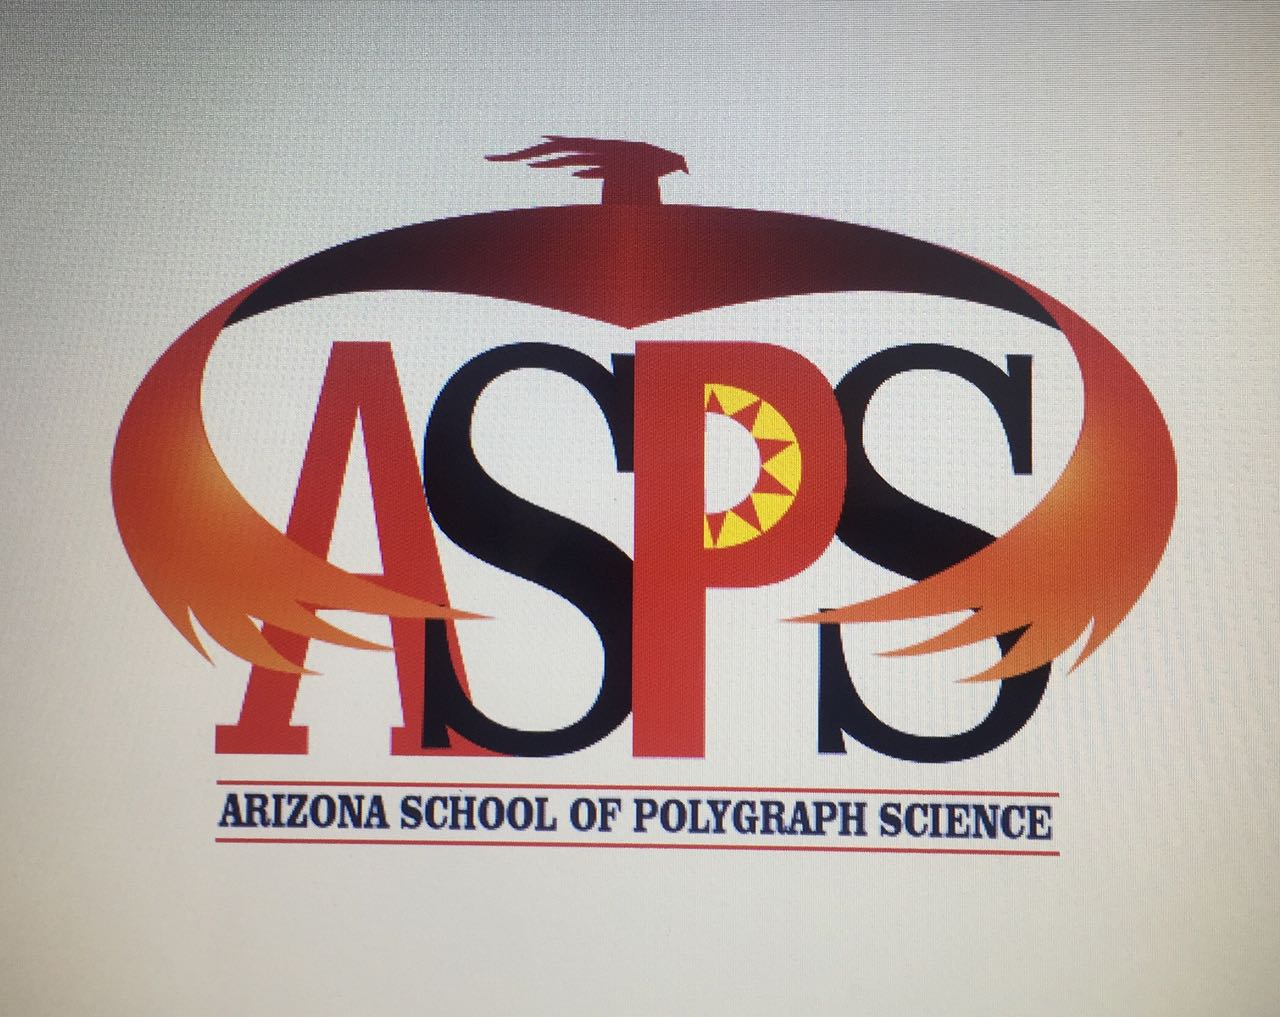 https://www.arizonaschoolofpolygraphscience.com/